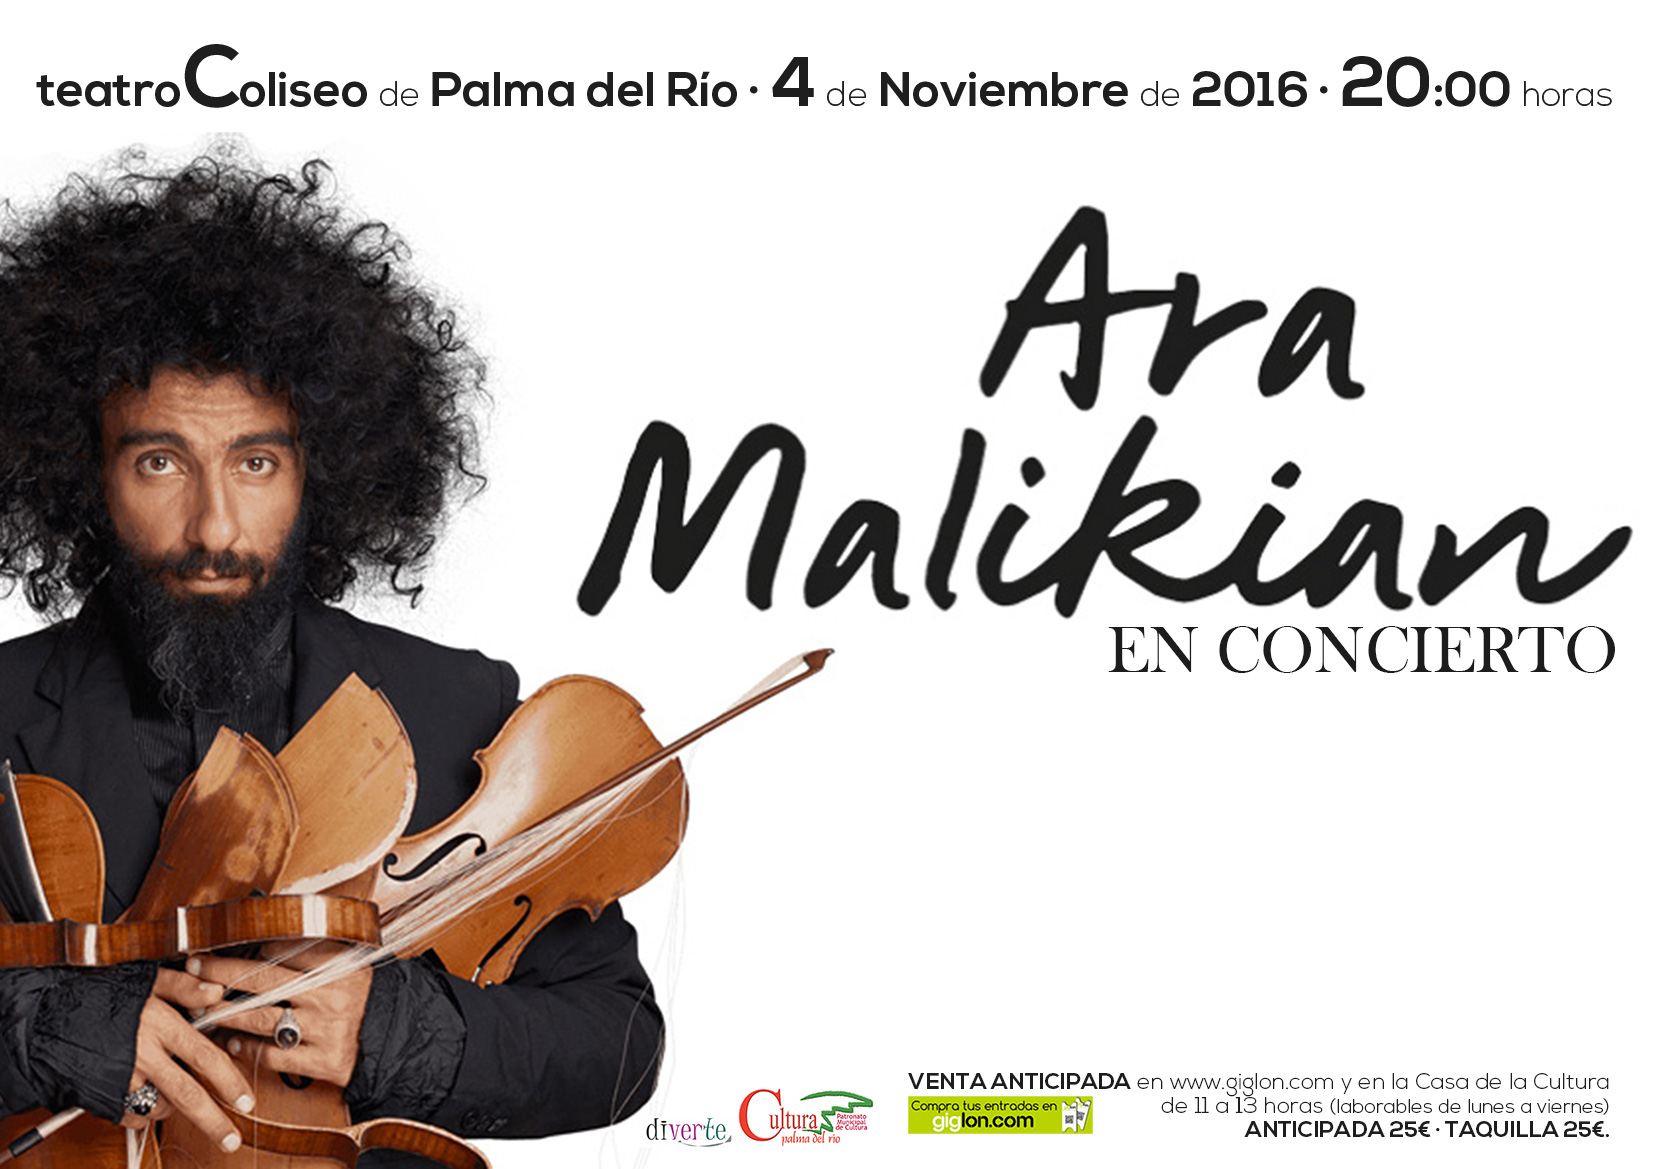 https://www.palmadelrio.es/sites/default/files/web-ara-malikian-cartel.jpg